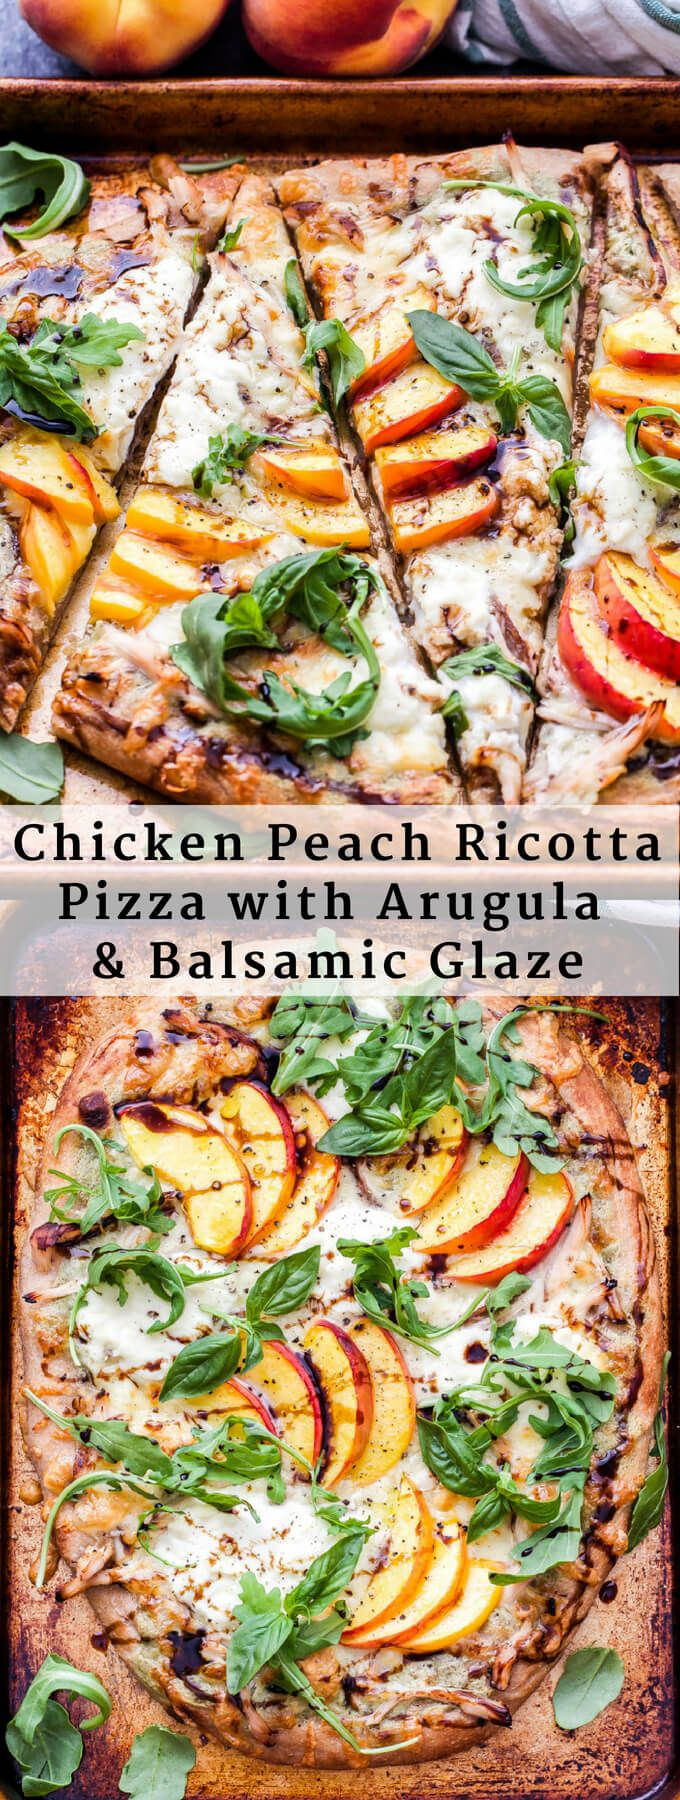 Chicken Peach Ricotta Pizza with Arugula and Balsamic Glaze is bursting with sum…